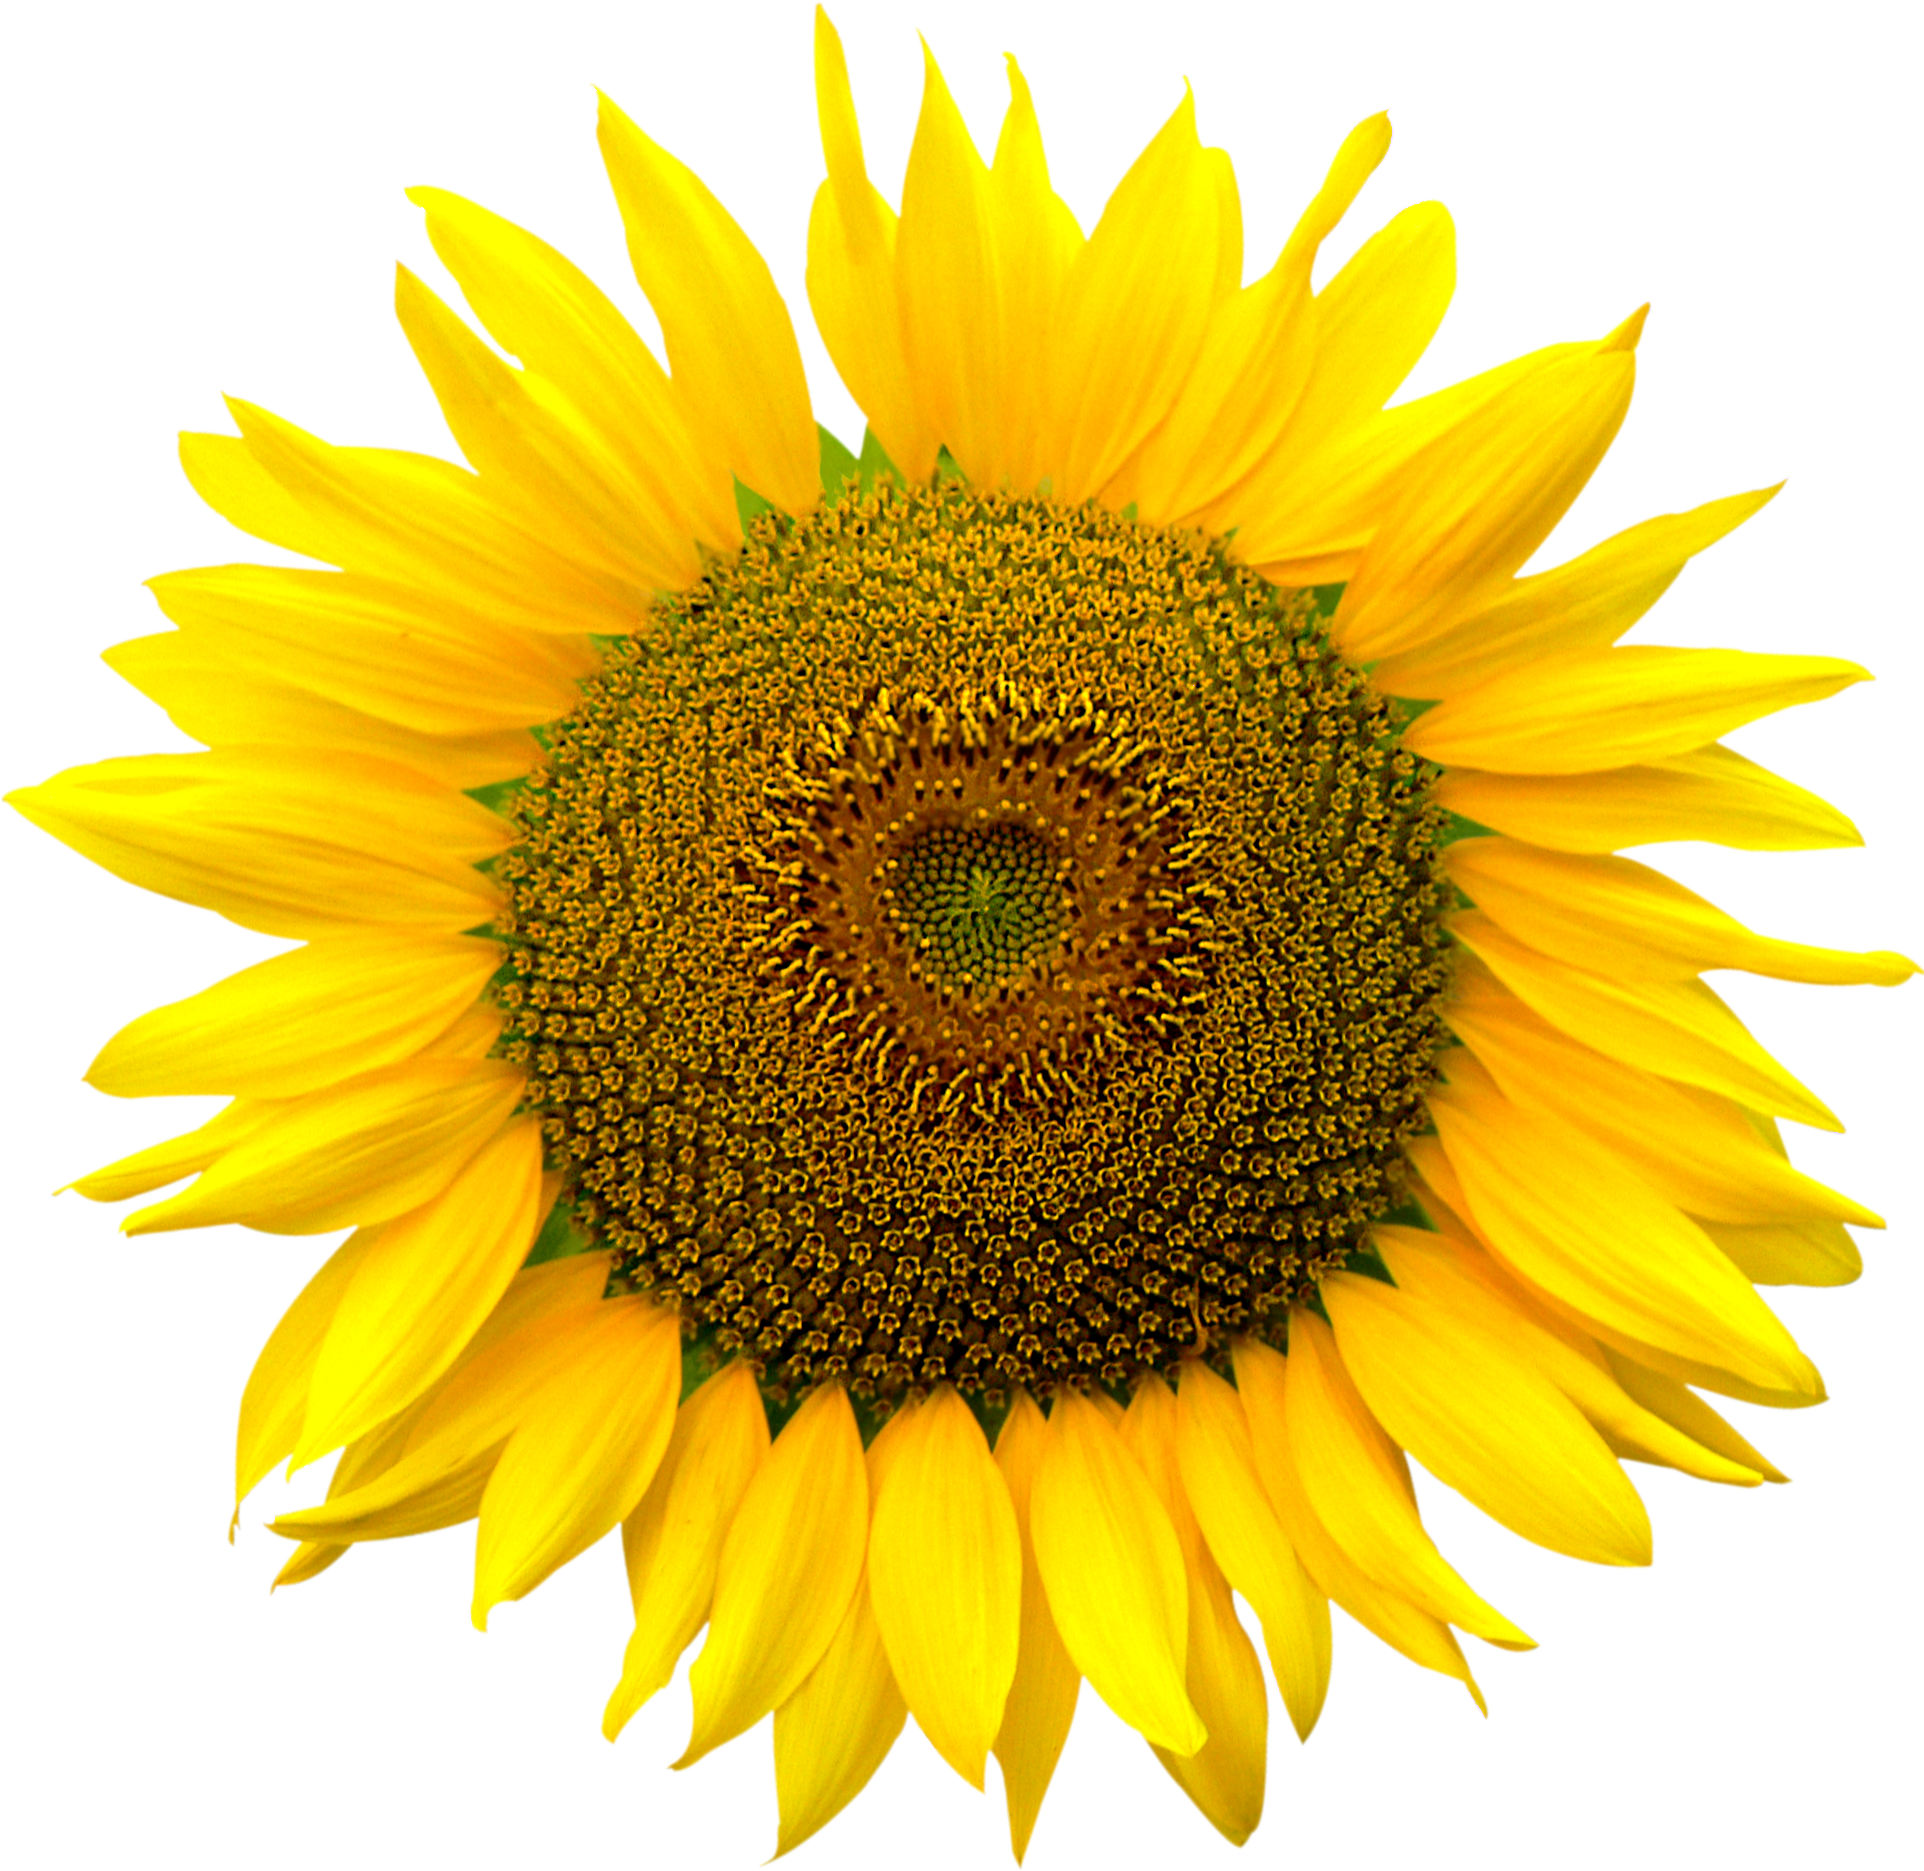 Sunflower heart inside, Png file, Attention only the maximum.